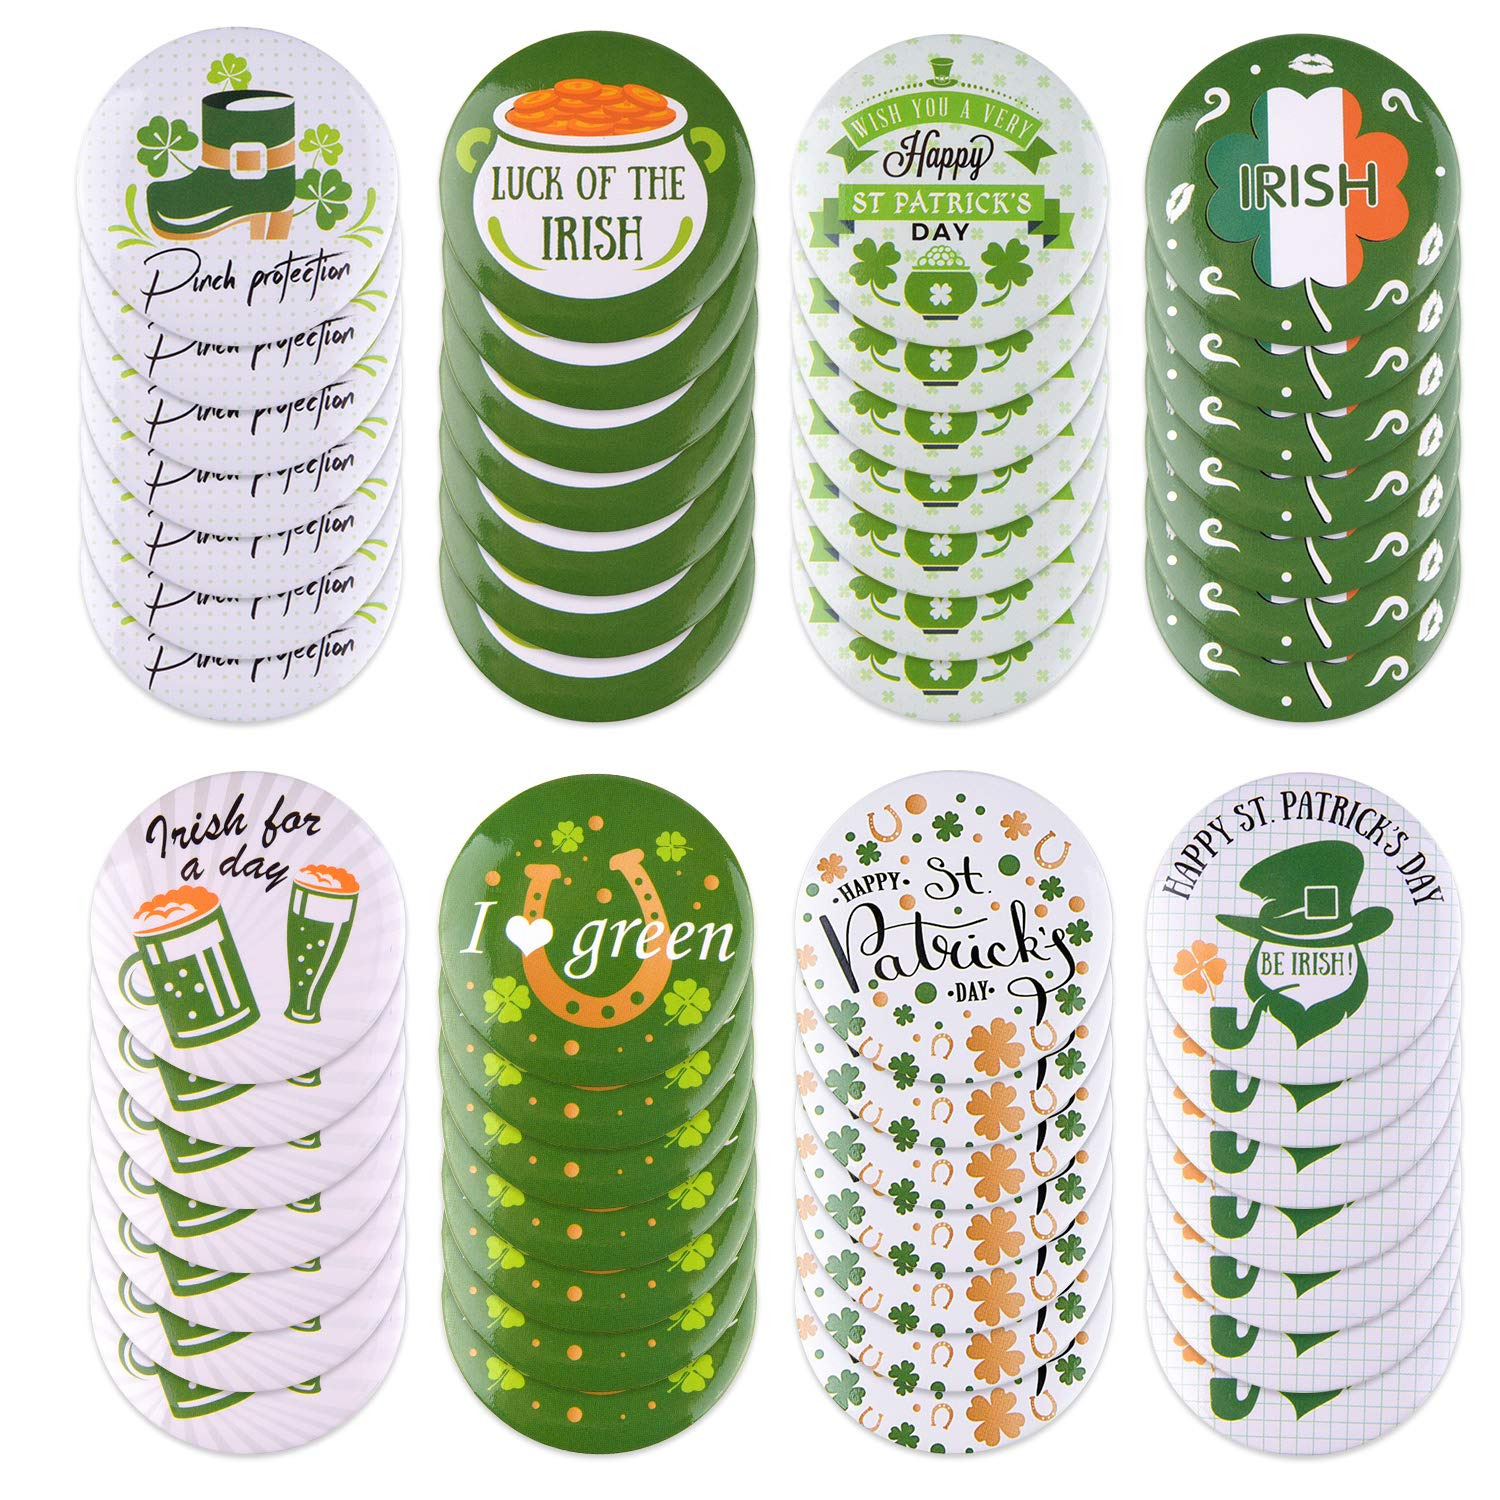 Patricks Day Decoration,St TUPARKA 48 Pcs St Patricks Day Irish Buttons Pins Mini Shamrock Badges For St Patricks Day Party Favors Supplies Kids Gift 8 Patterns